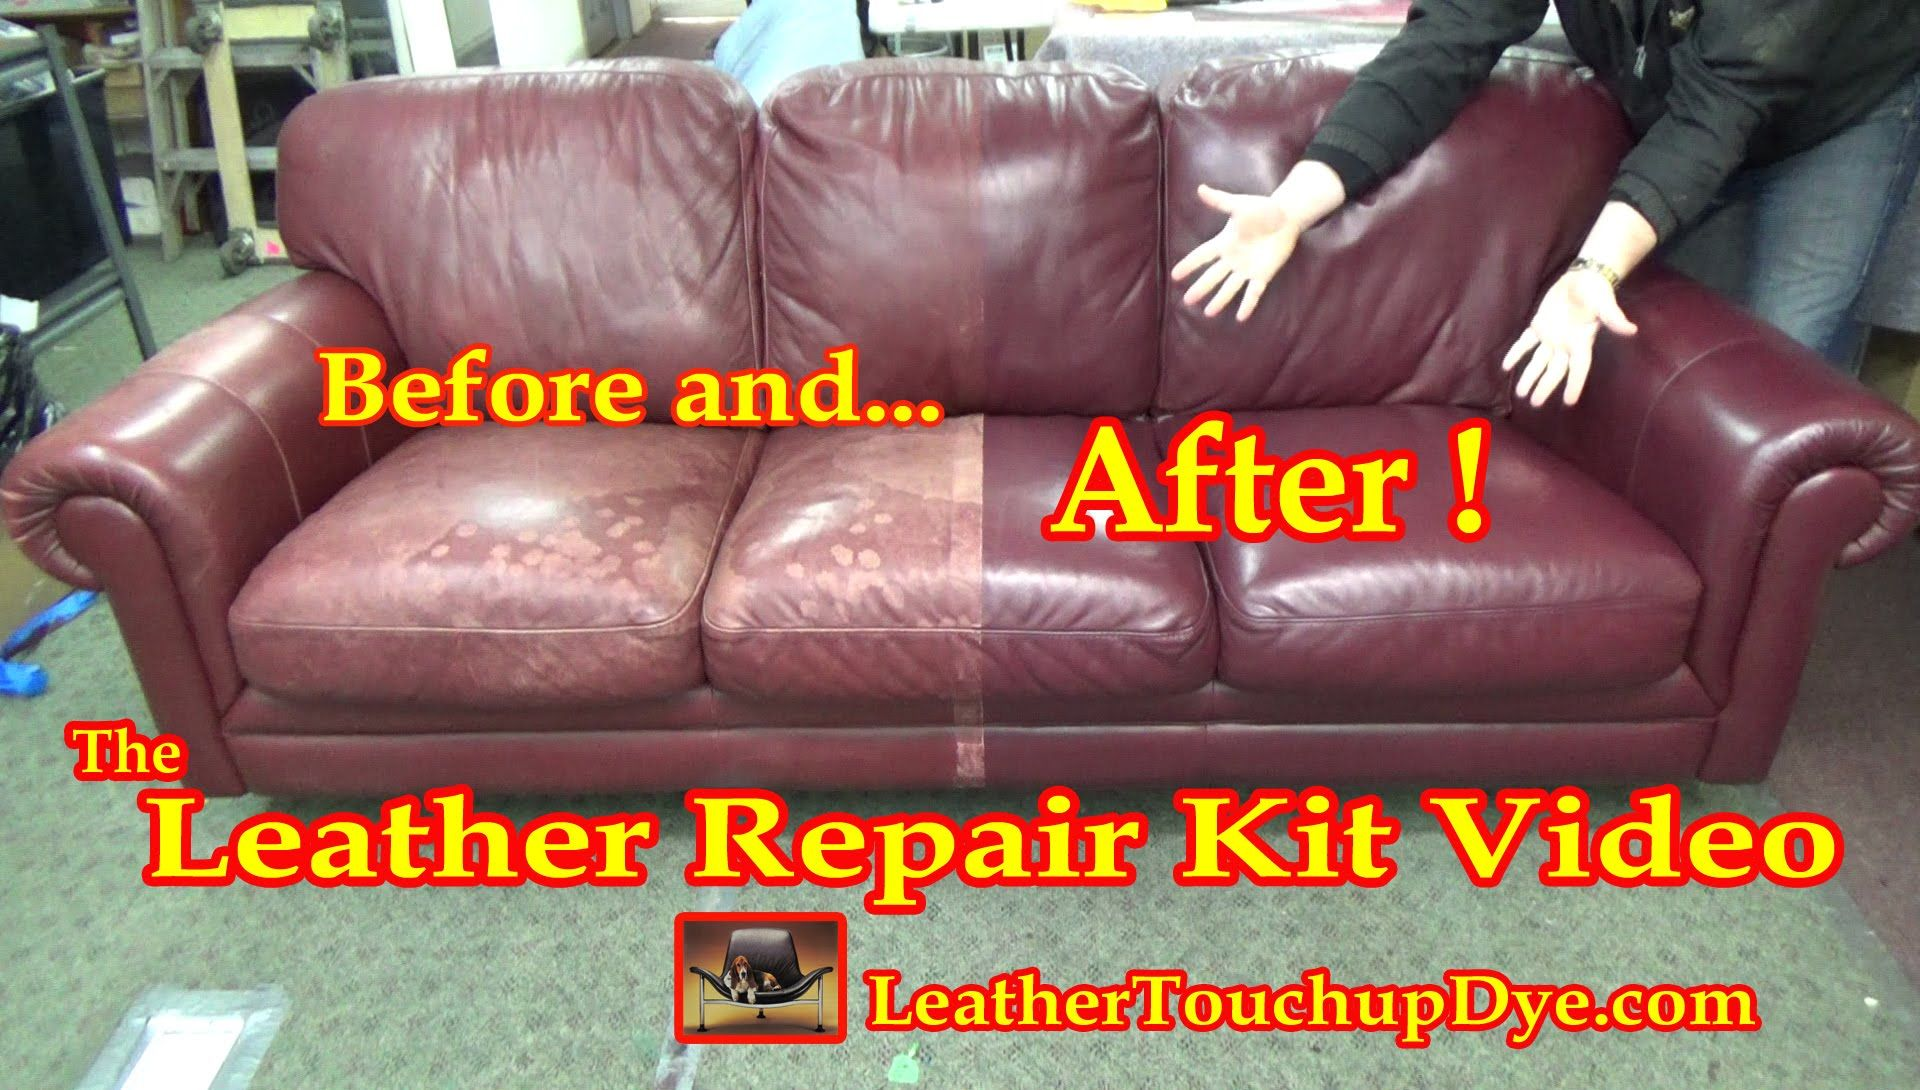 The Leather Repair Kit Video